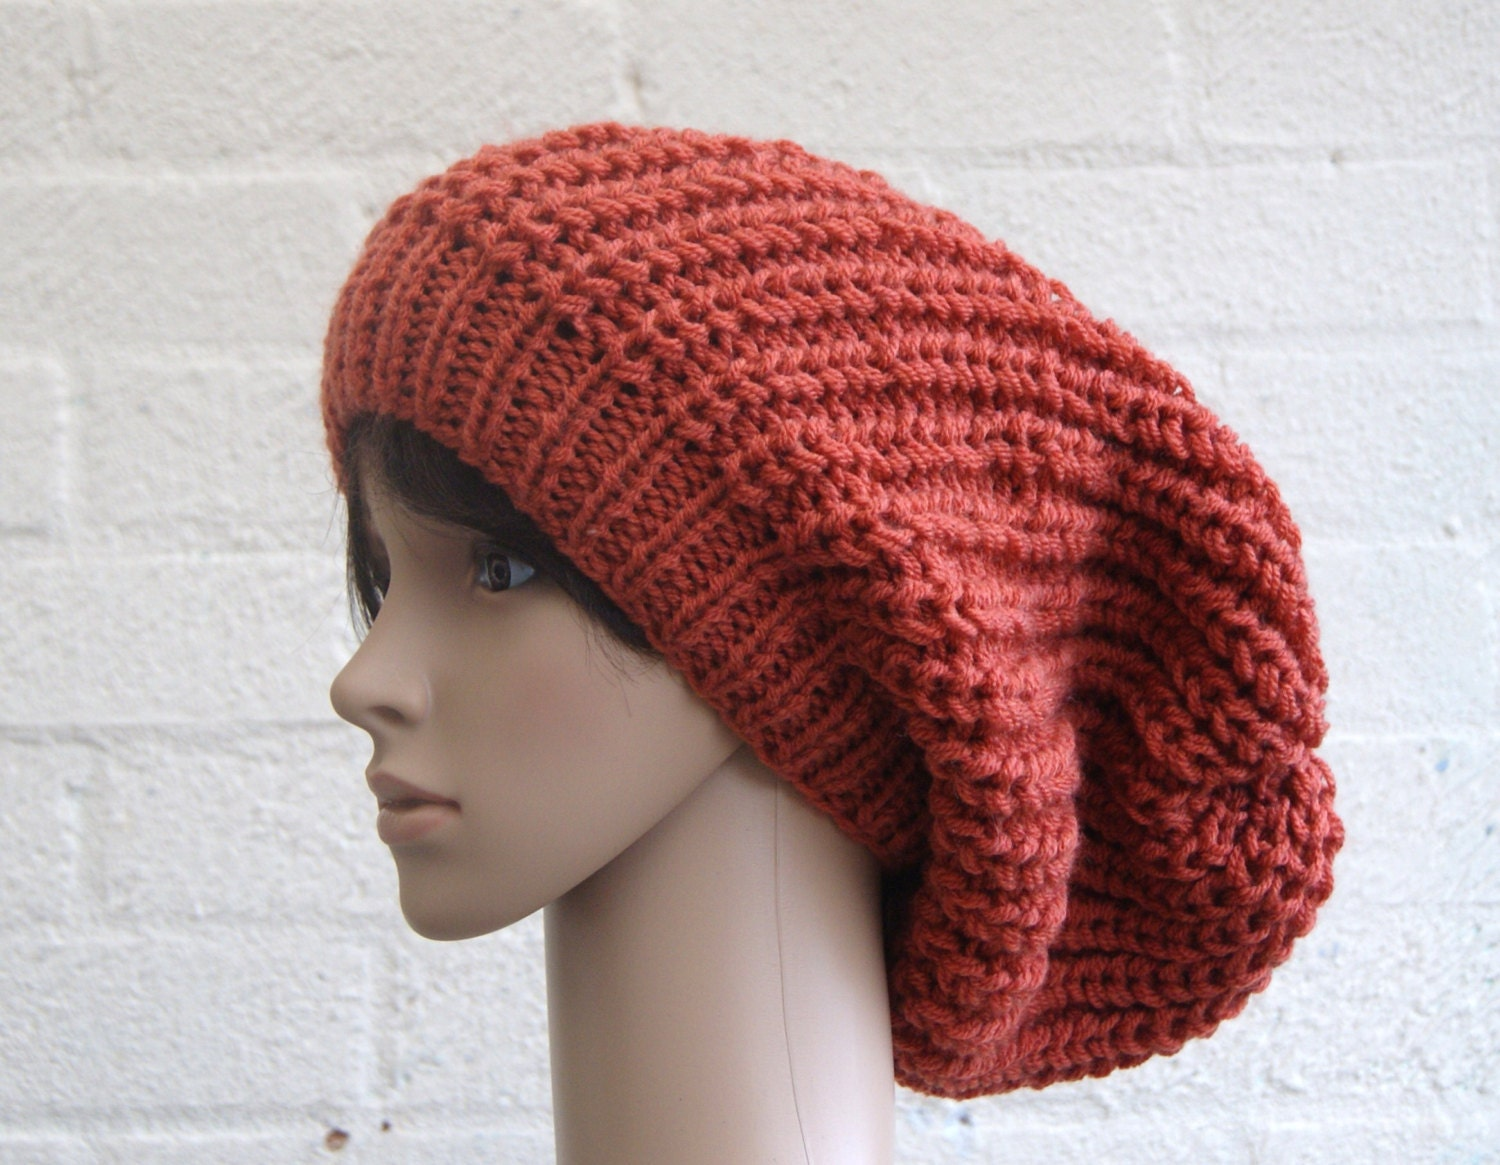 Extra large Knitted Slouchy Rusty Beanie hat by StripesnCables